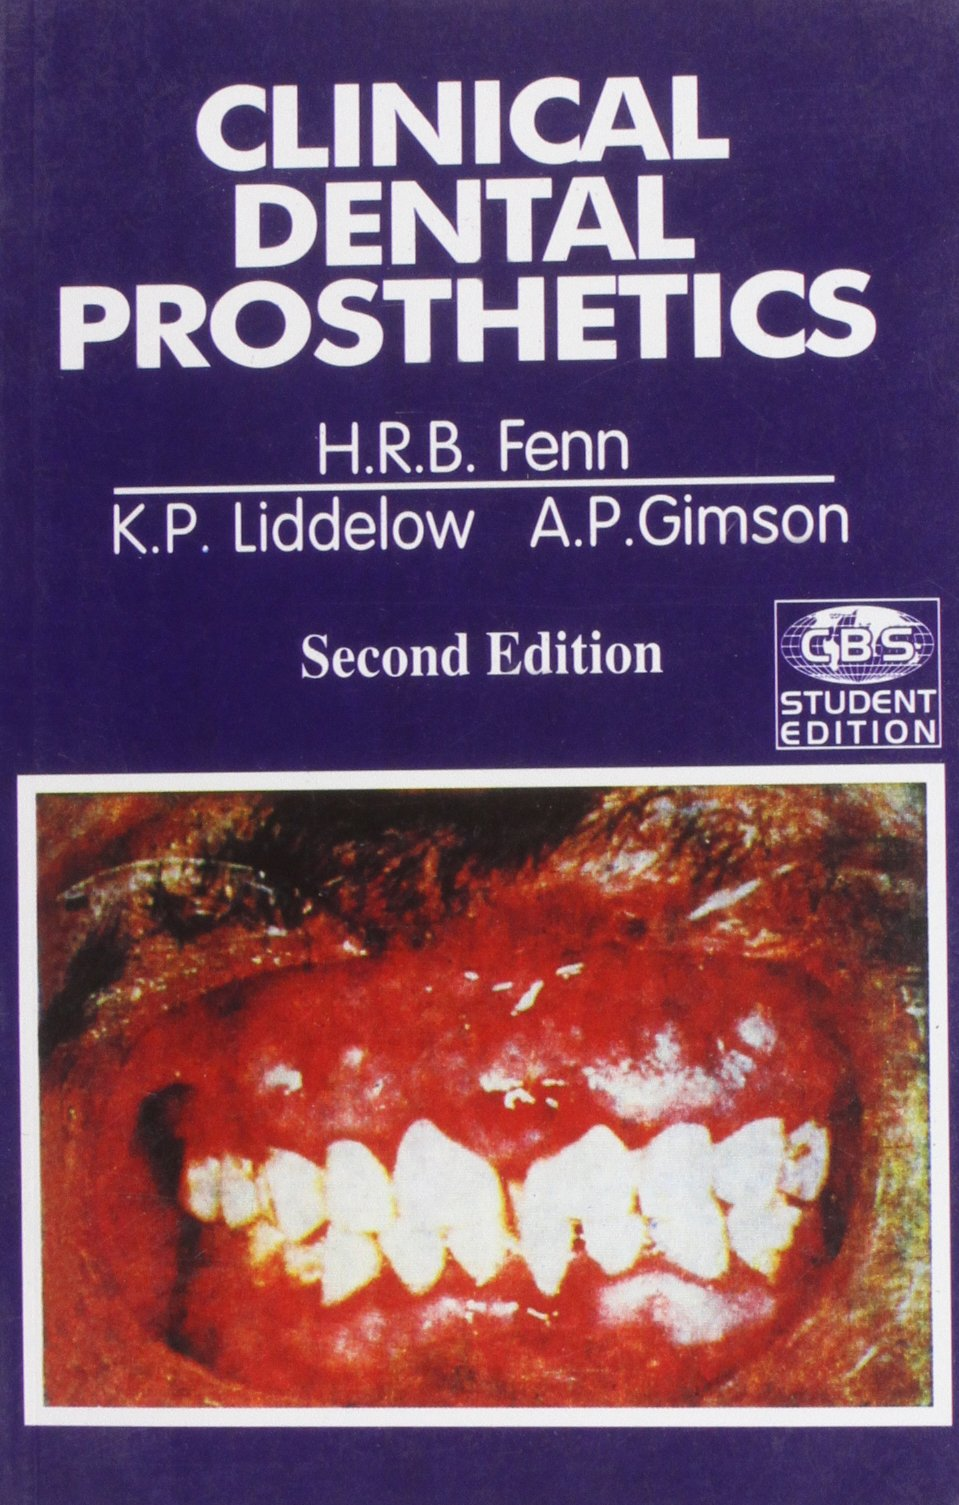 Buy clinical dental prosthetics book online at low prices in india buy clinical dental prosthetics book online at low prices in india clinical dental prosthetics reviews ratings amazon fandeluxe Images